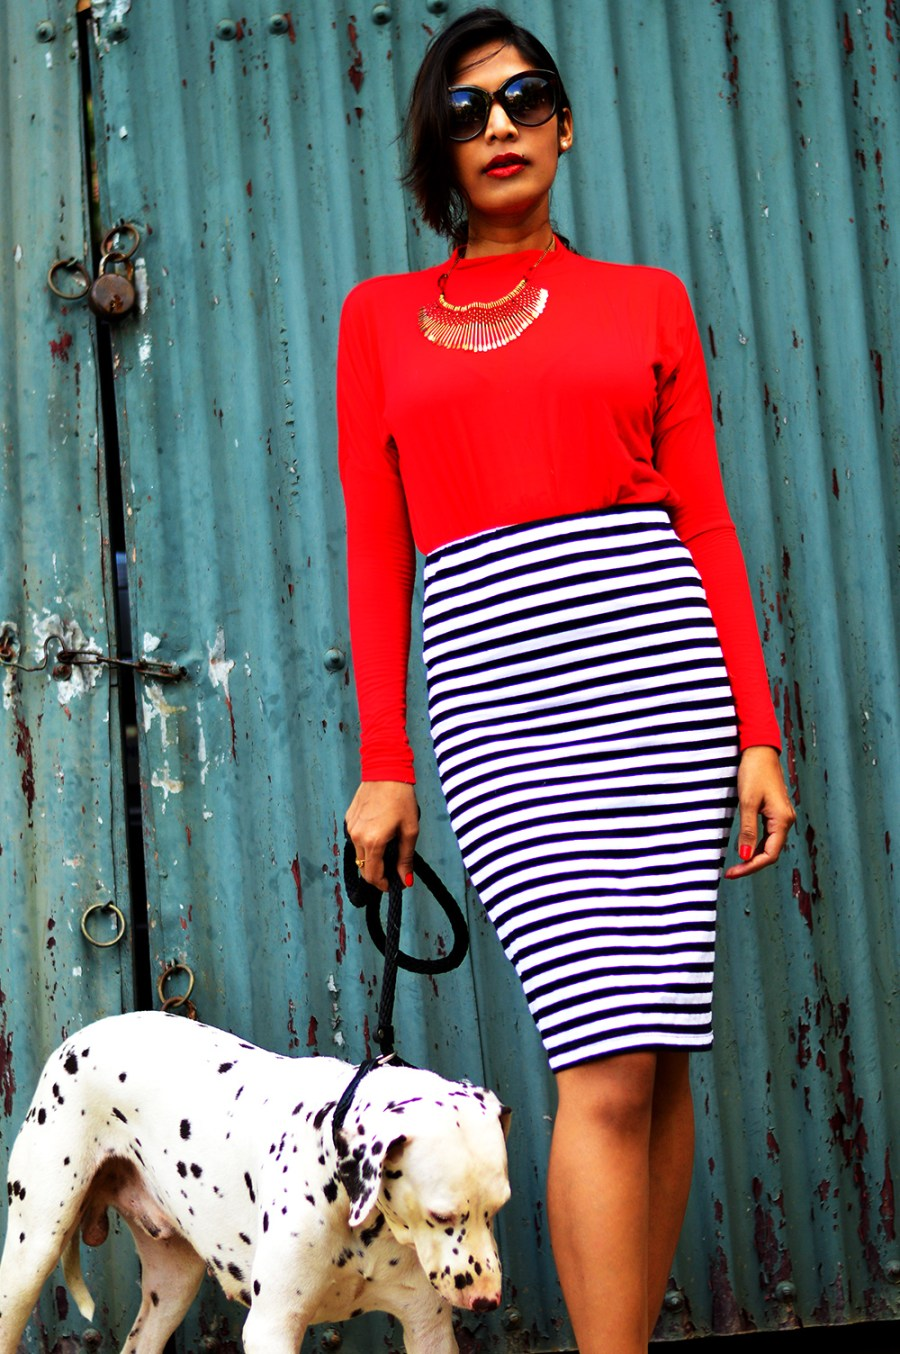 Fashion, Style, Fashion photography, Street Style, Fashion Blogger, Striped Pencil Skirt, Fashion Photo with animals, Red Blouse-5